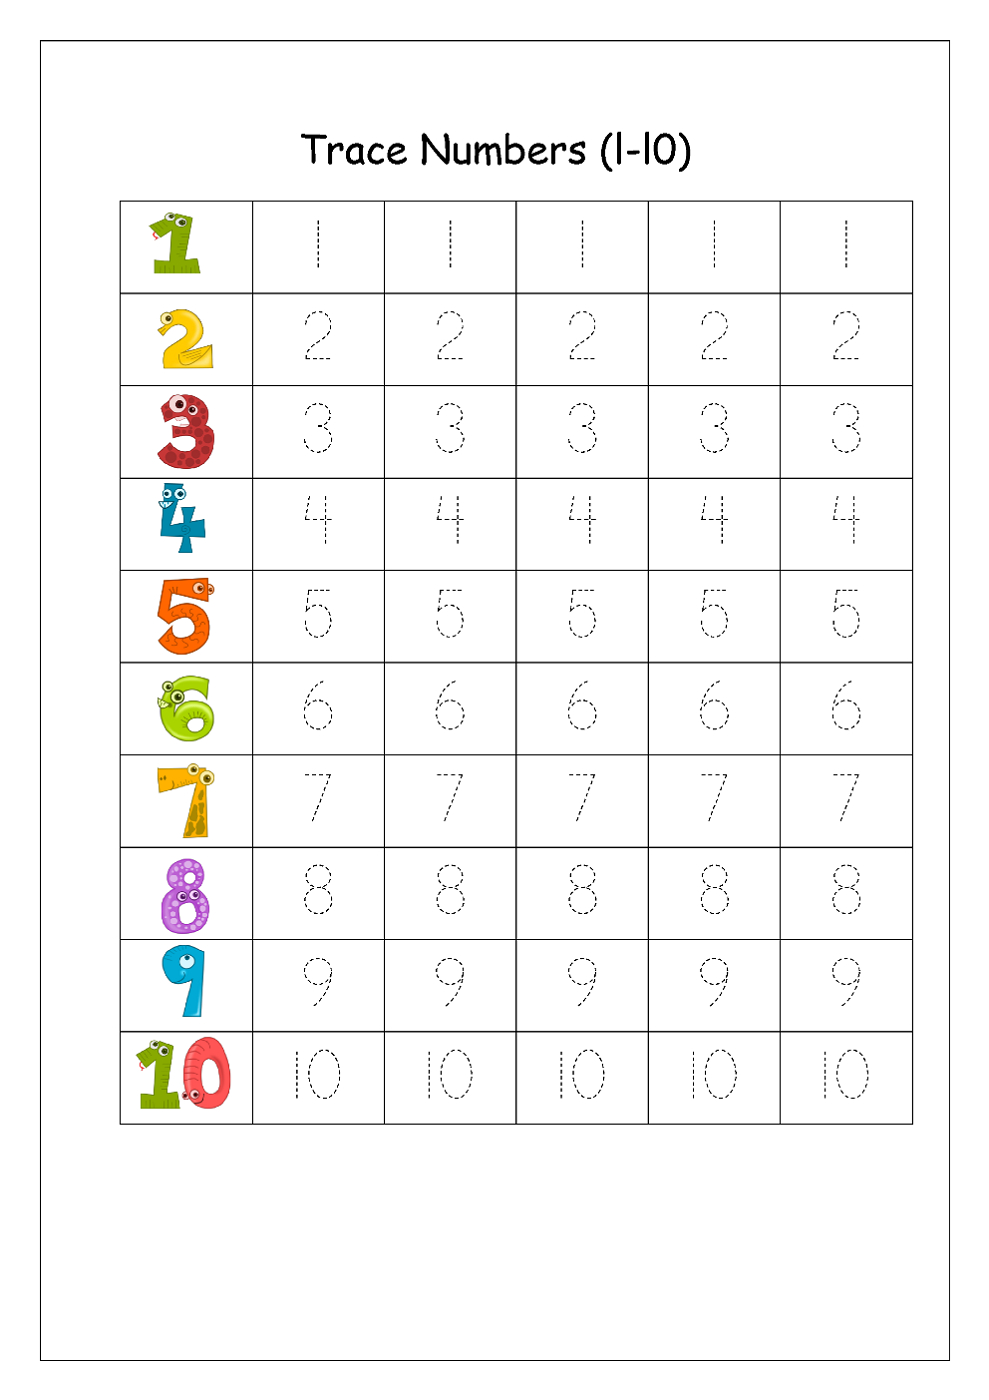 Writing Numbers Worksheet - Kids Learning Activity | Printable | Printable Number Tracing Worksheets